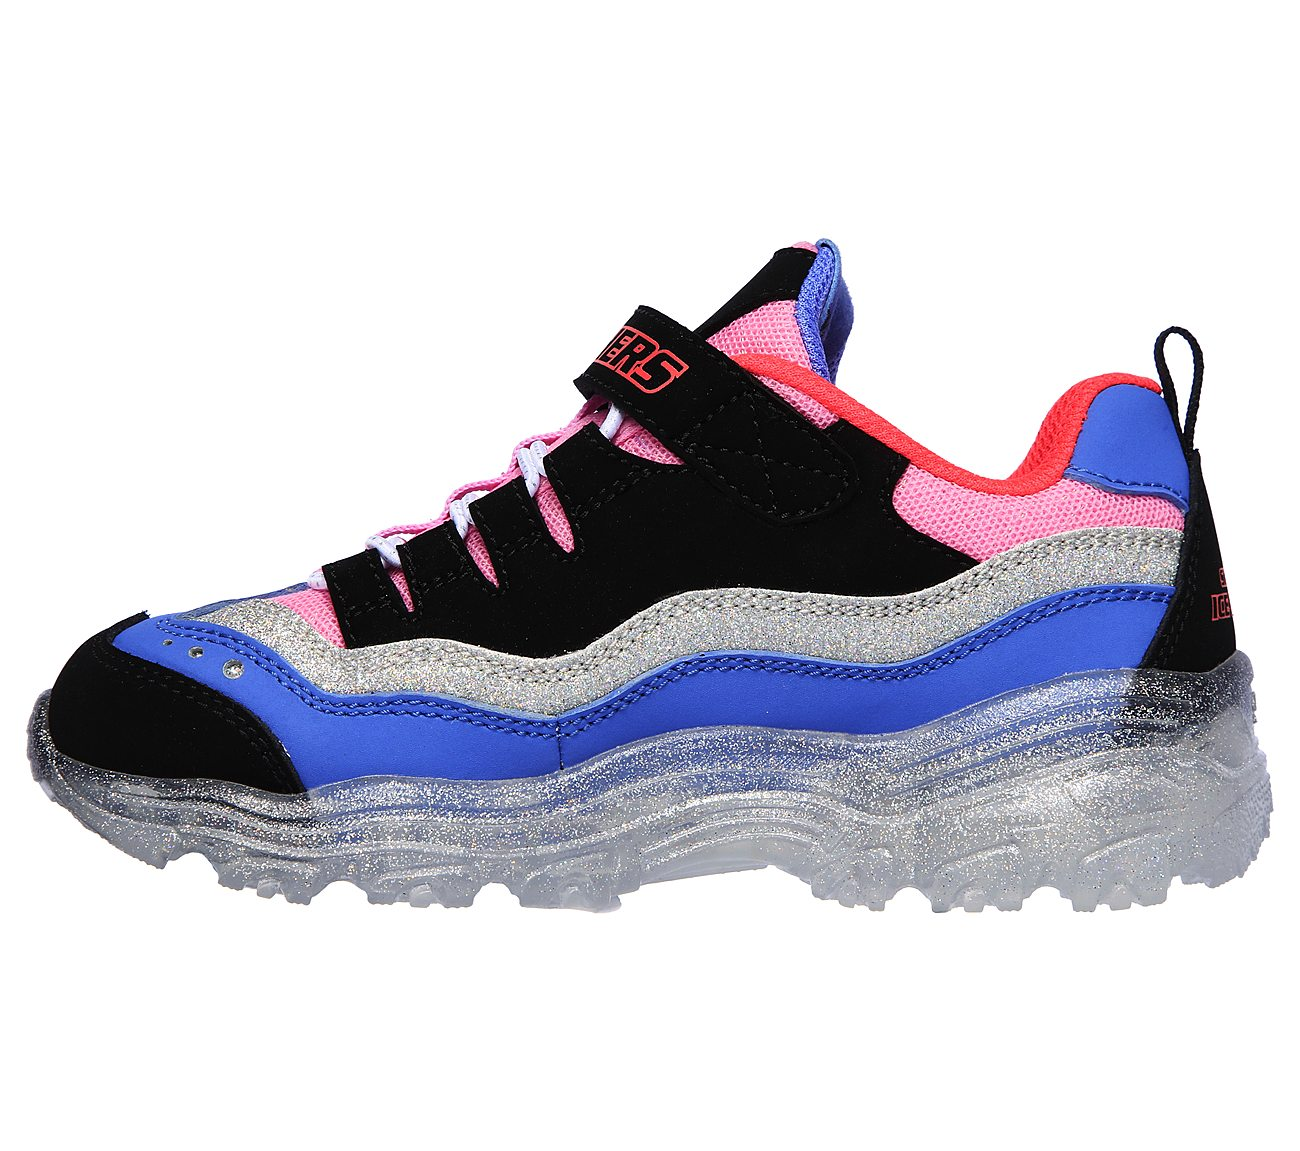 Skechers Girls' S Lights Ice D'Lites Snow Spark Sneaker